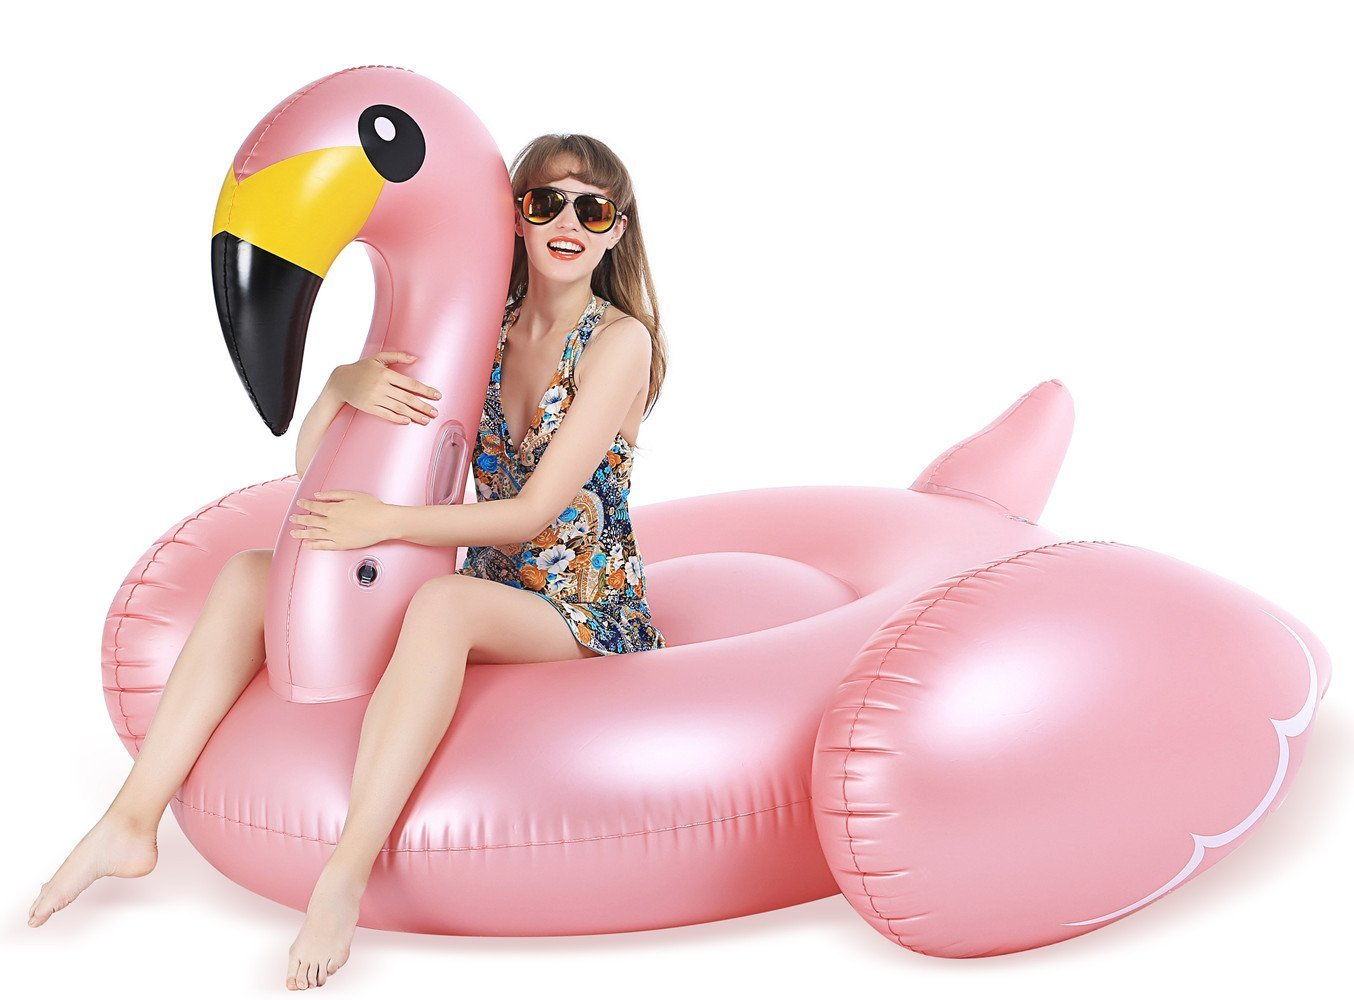 Jasonwell Giant Inflatable Flamingo Pool Float with Fast Valves Summer Beach Swimming Pool Party Lounge Raft Decorations Toys for Adults Kids XXXX-Large